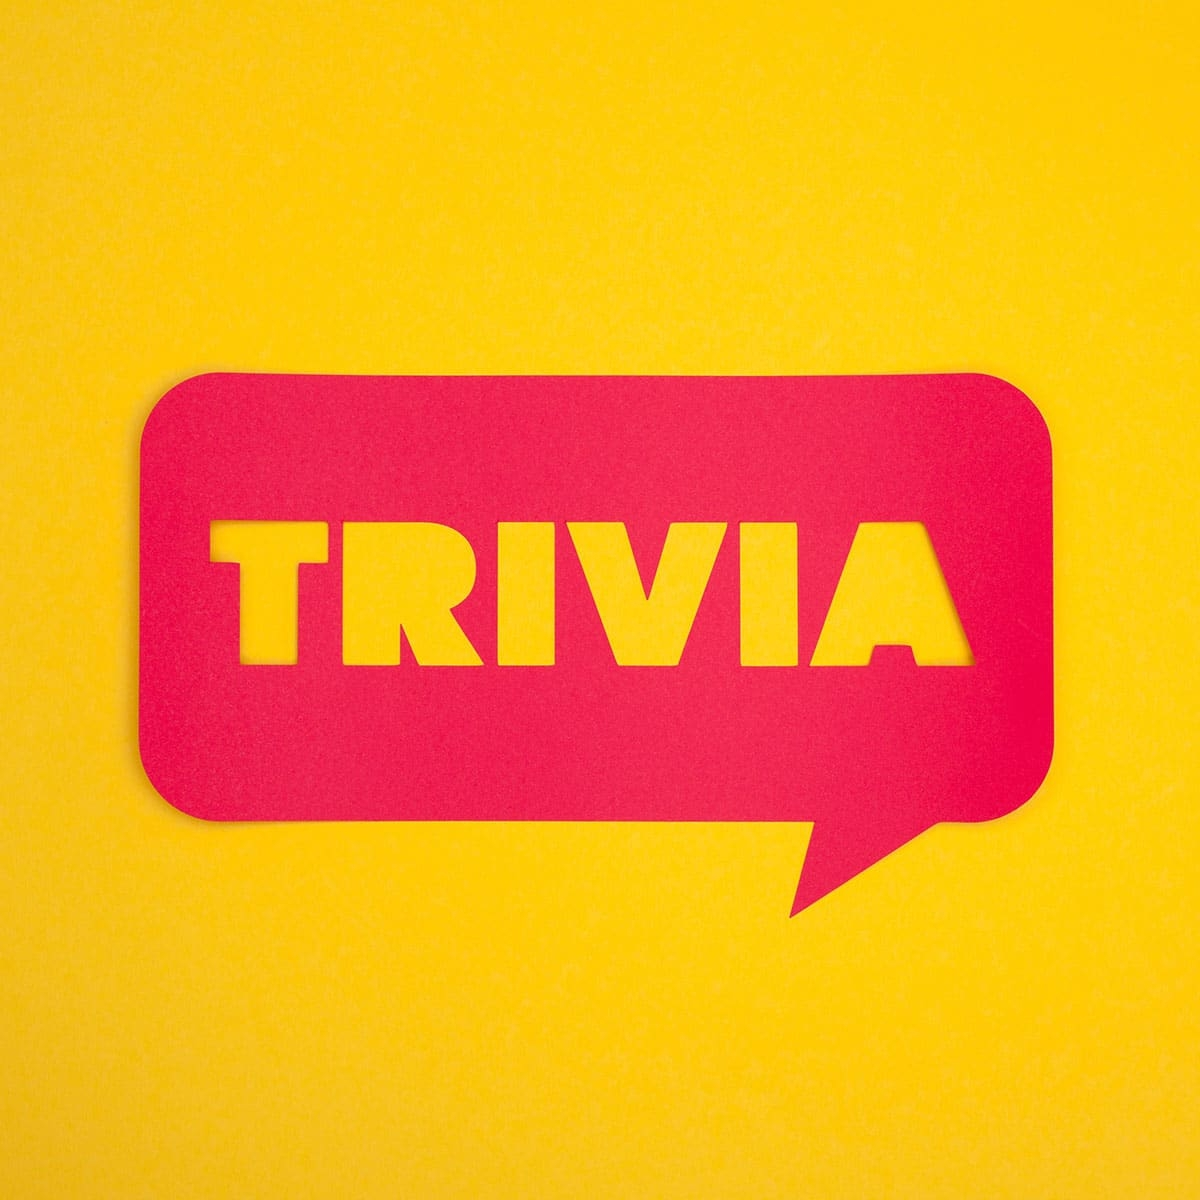 National Trivia Day 2019